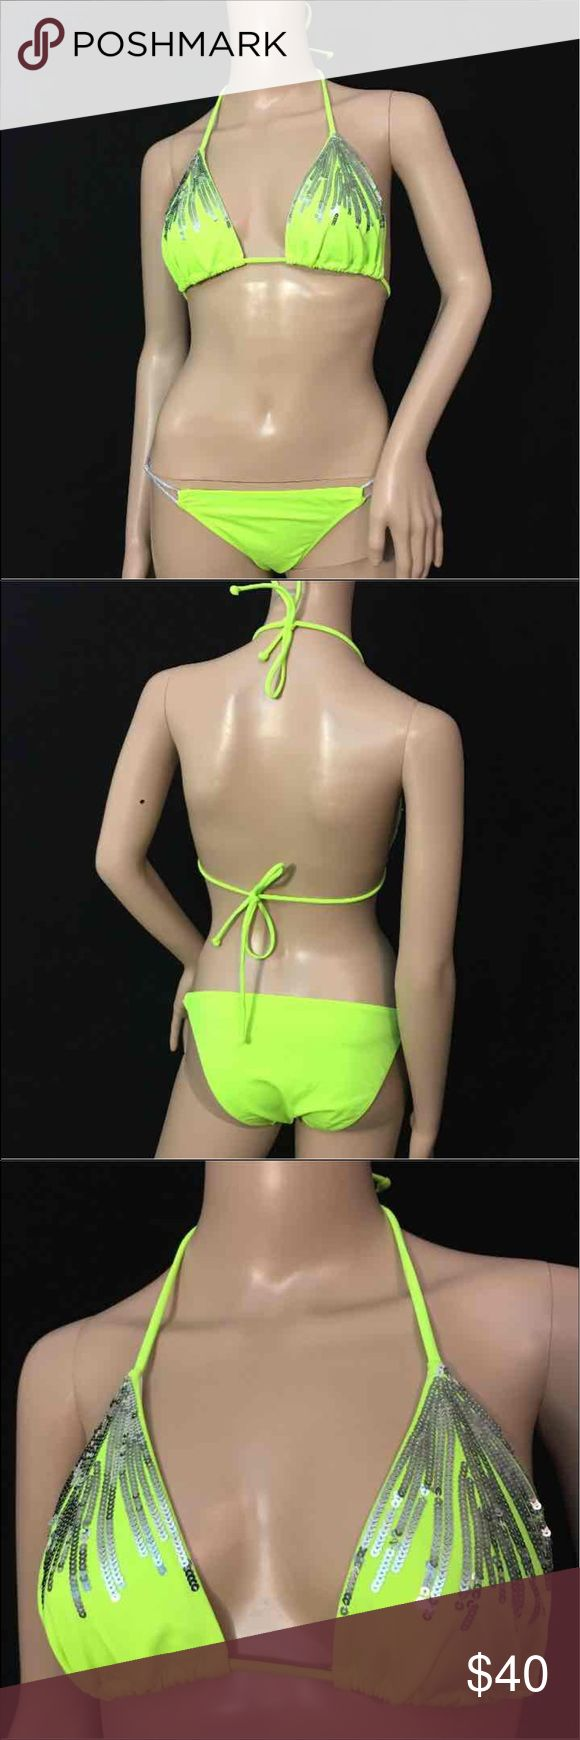 Victoria's Secret Neon Yellow w/ Silver Sequins Super sexy Victoria's Secret Neon yellow with silver sequin detail • Tags have been cut out but both top and bottoms are a size medium • Suit is in like new condition and was never worn • Bottoms have silver interlocking straps and top is a triangle style • suit is excellent shape and no flaws Victoria's Secret Swim Bikinis